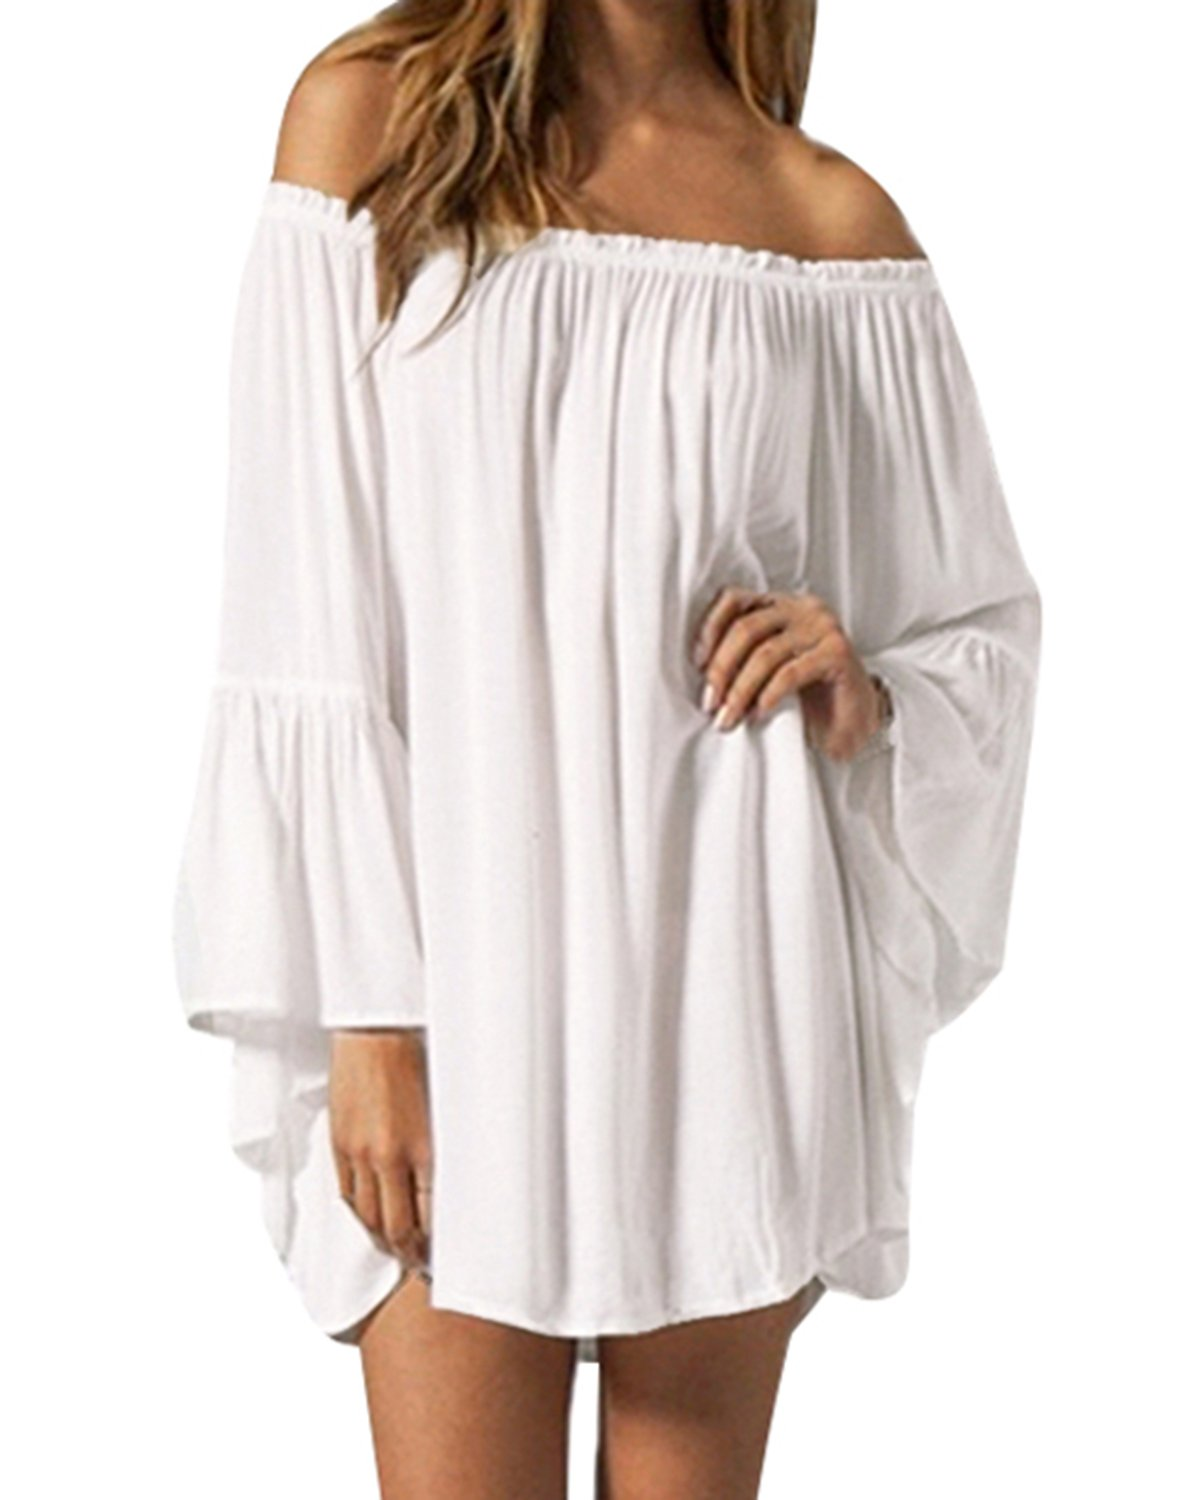 Sexy Ruffle Sleeve Off-Shoulder Chiffon White Chemise - DeluxeAdultCostumes.com